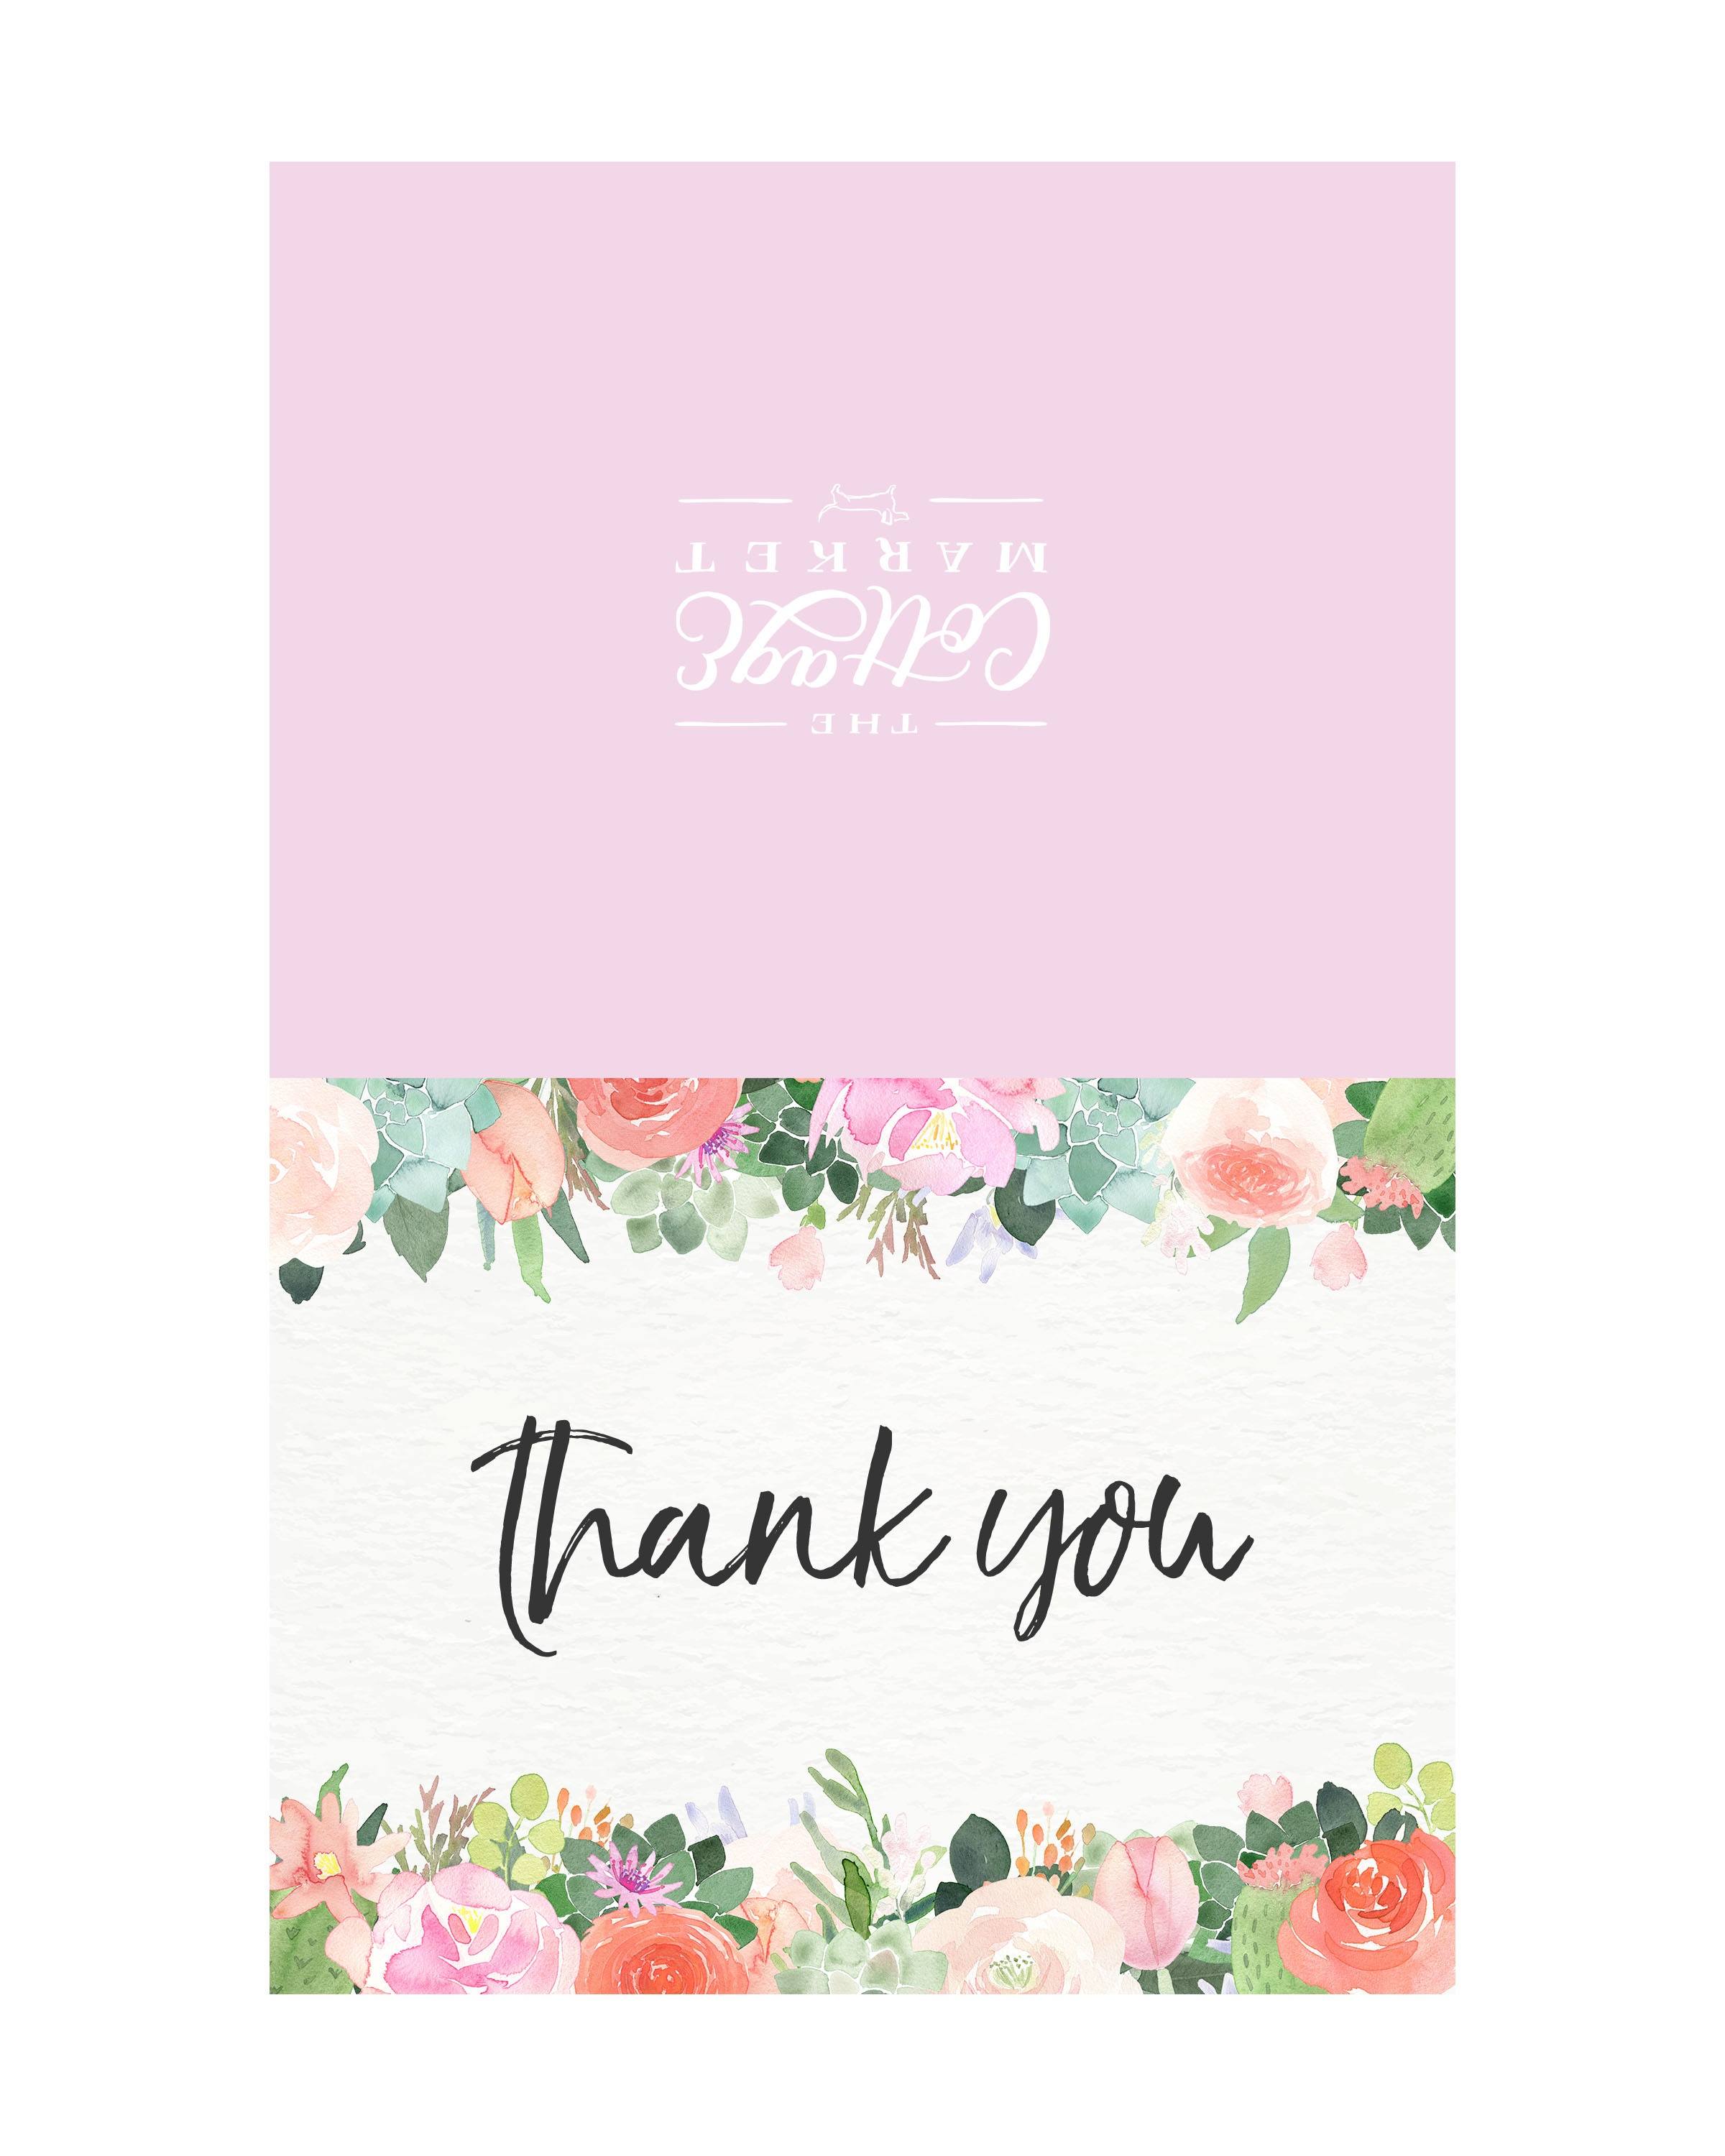 10 Free Printable Thank You Cards You Can't Miss - The Cottage Market - Free Printable Thank You